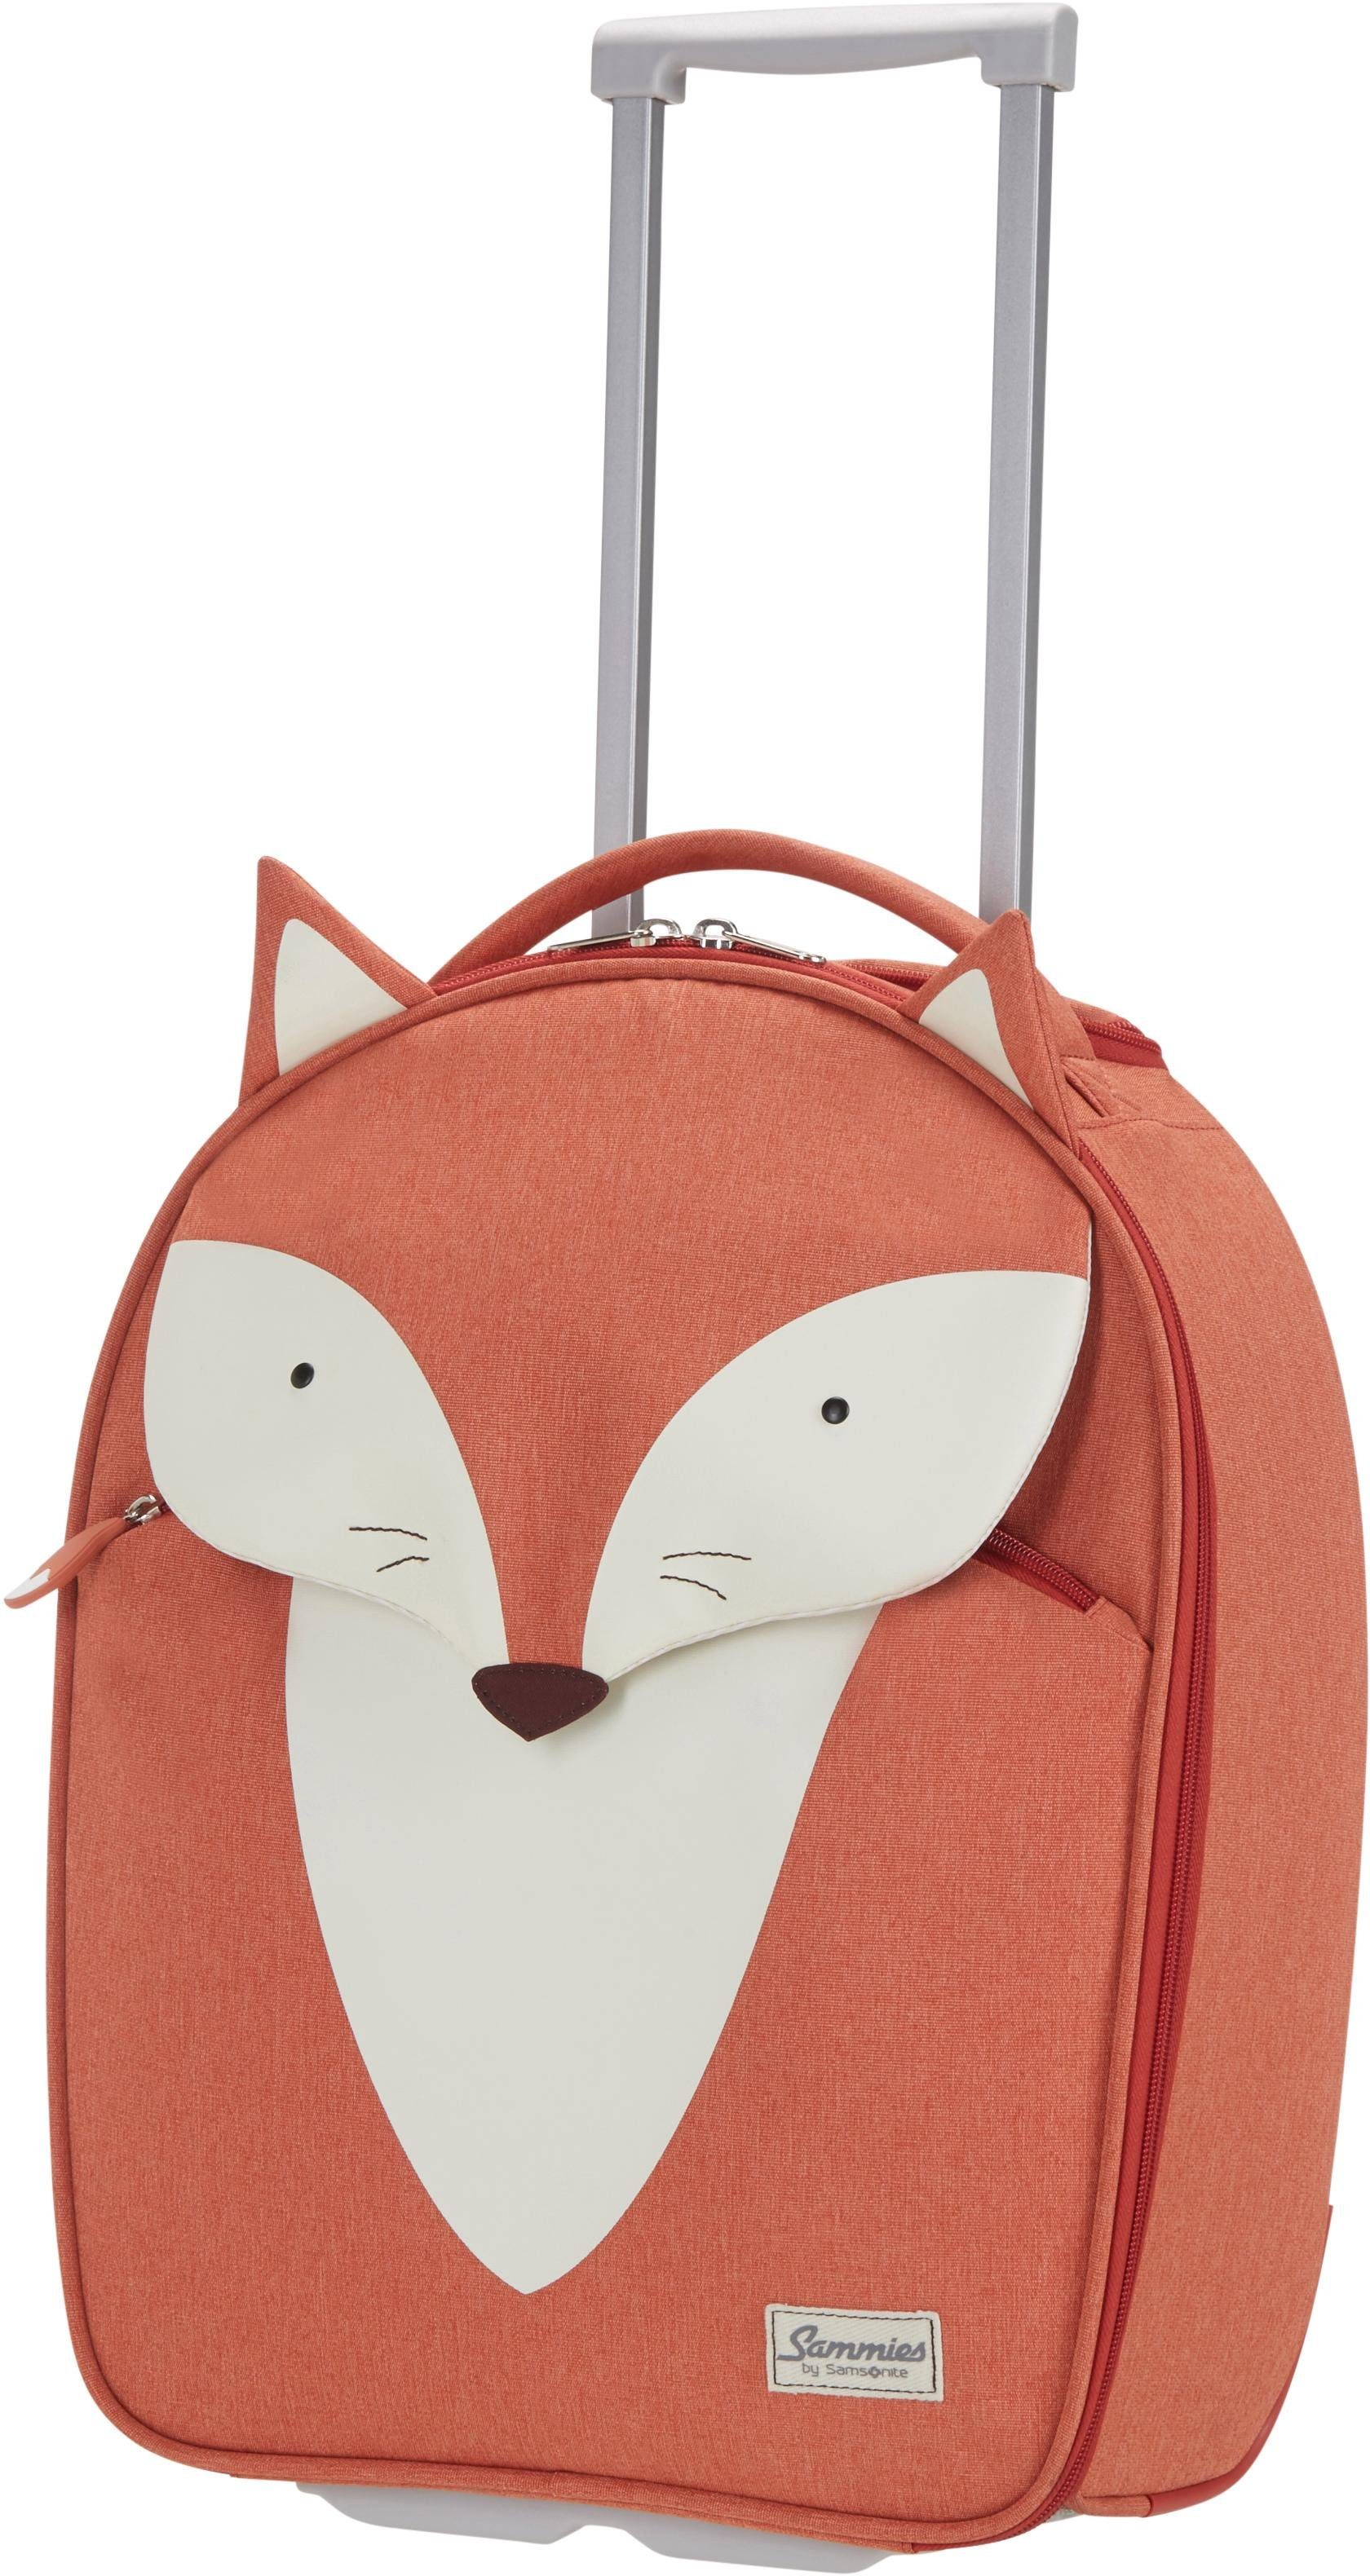 Samsonite Kindertrolley mit 2 Rollen, »Happy Sammies, Fox William«